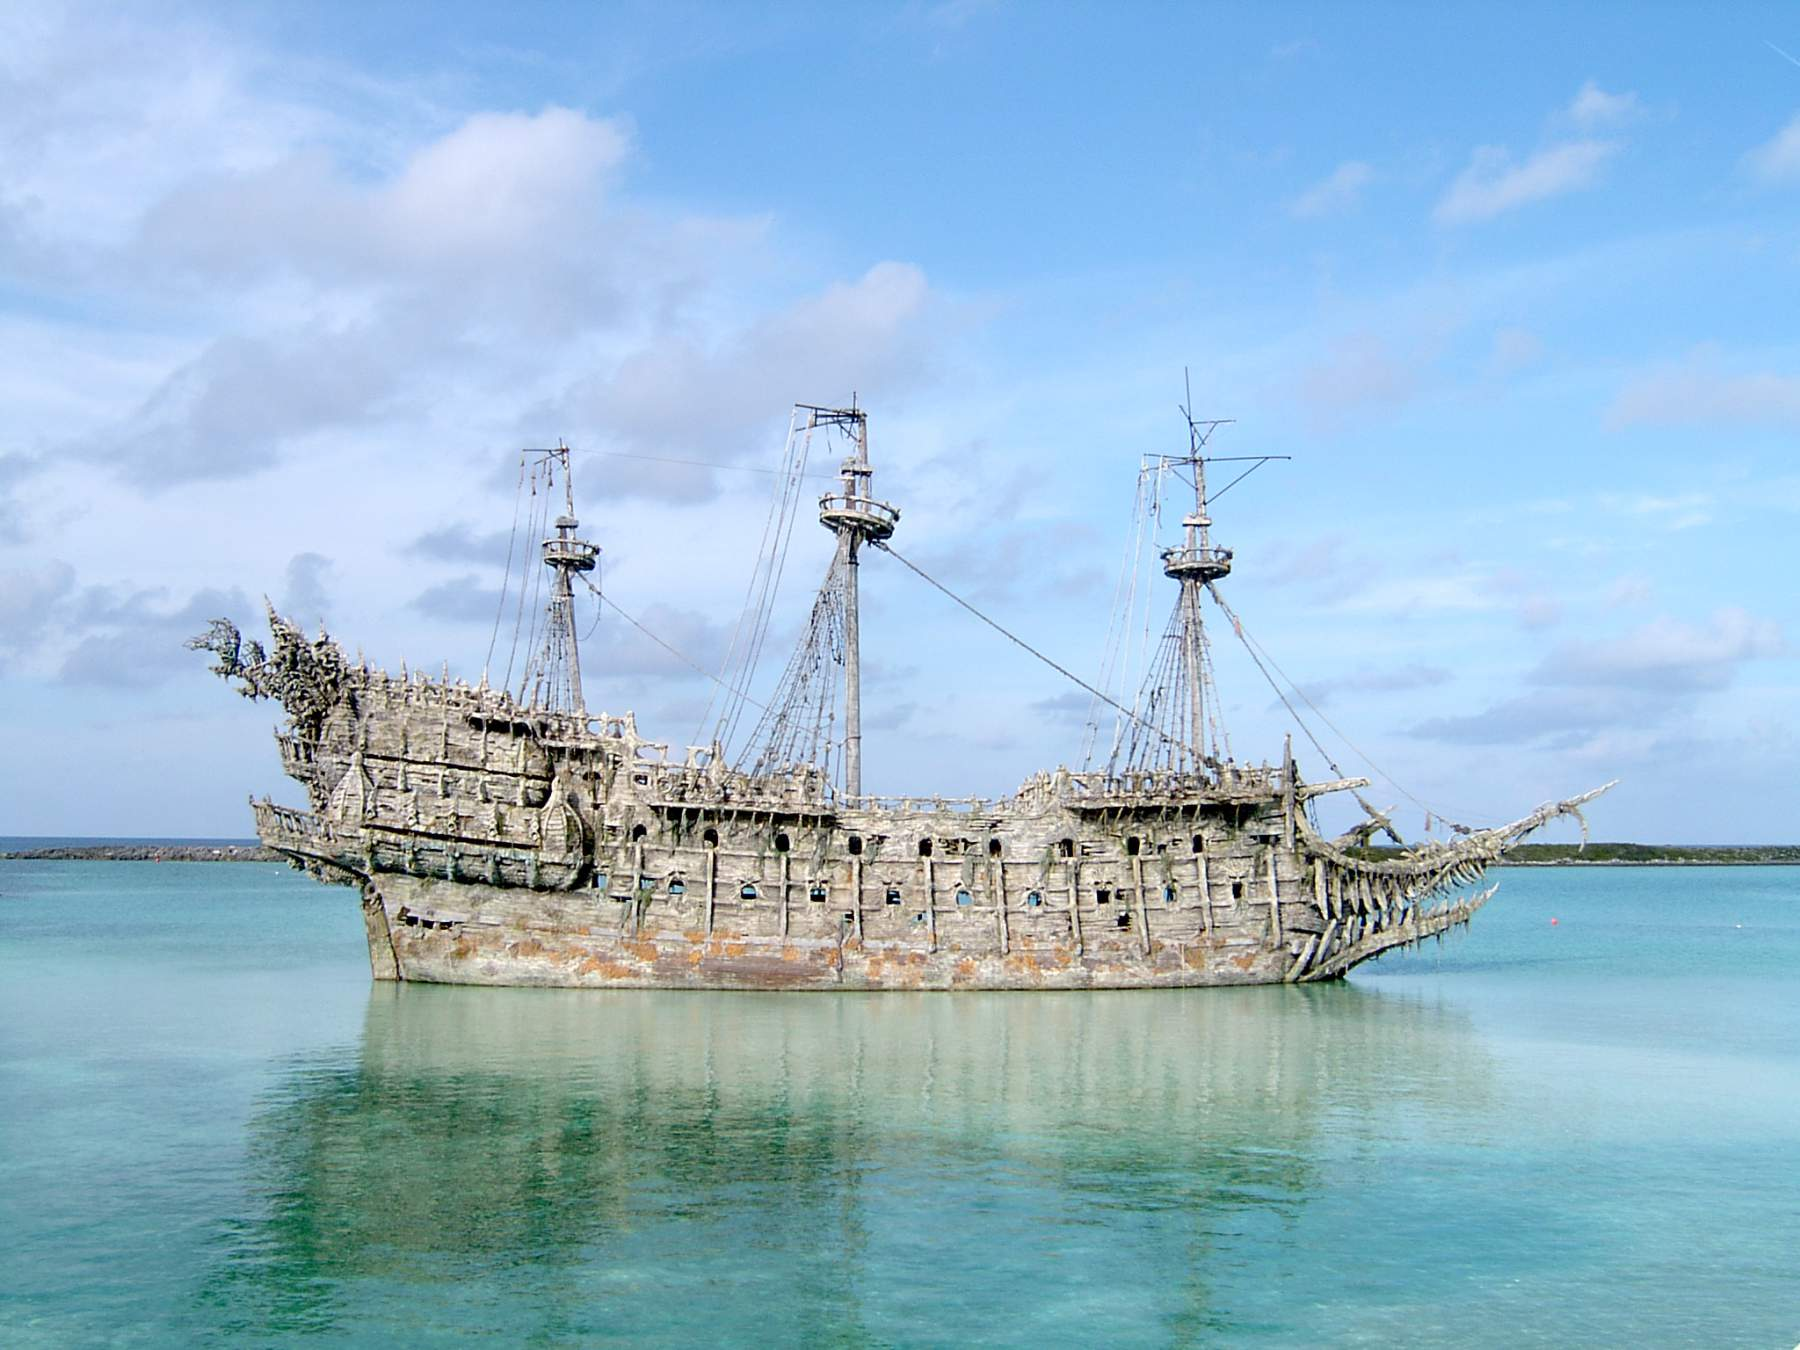 Pirate ship wreckage in the Caribbean